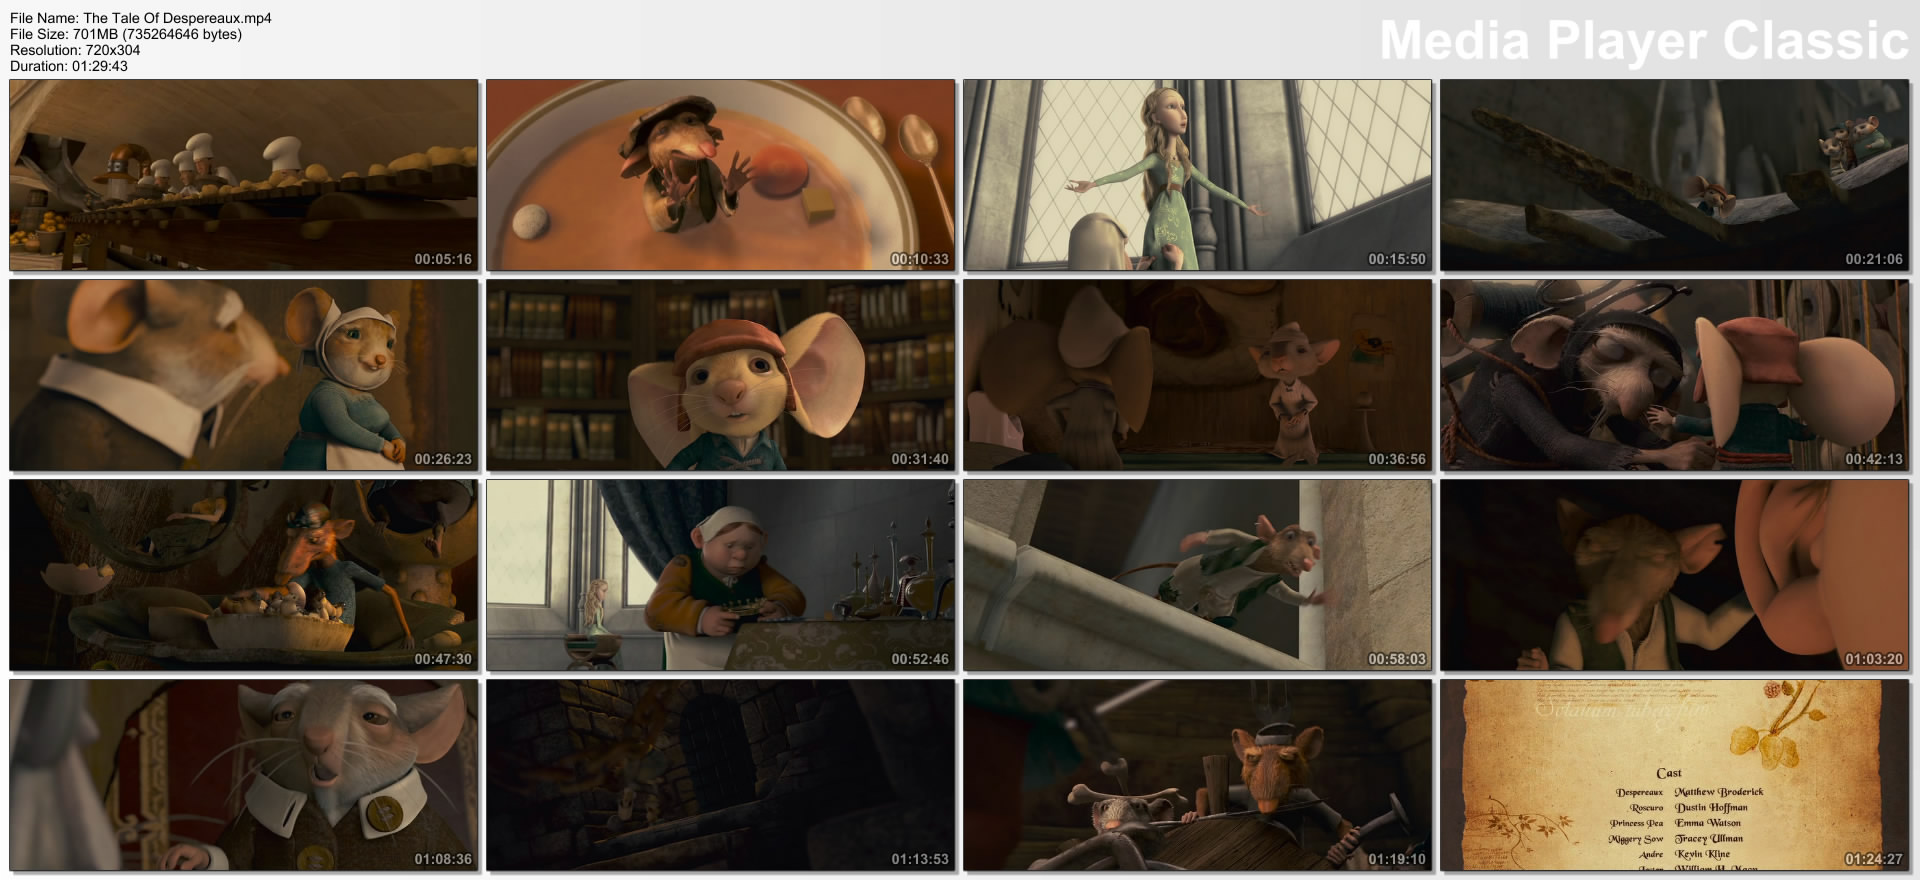 The Tale Of Despereaux 2008 R5 LINE H264 SecretMyth (Kingdom Release) preview 1